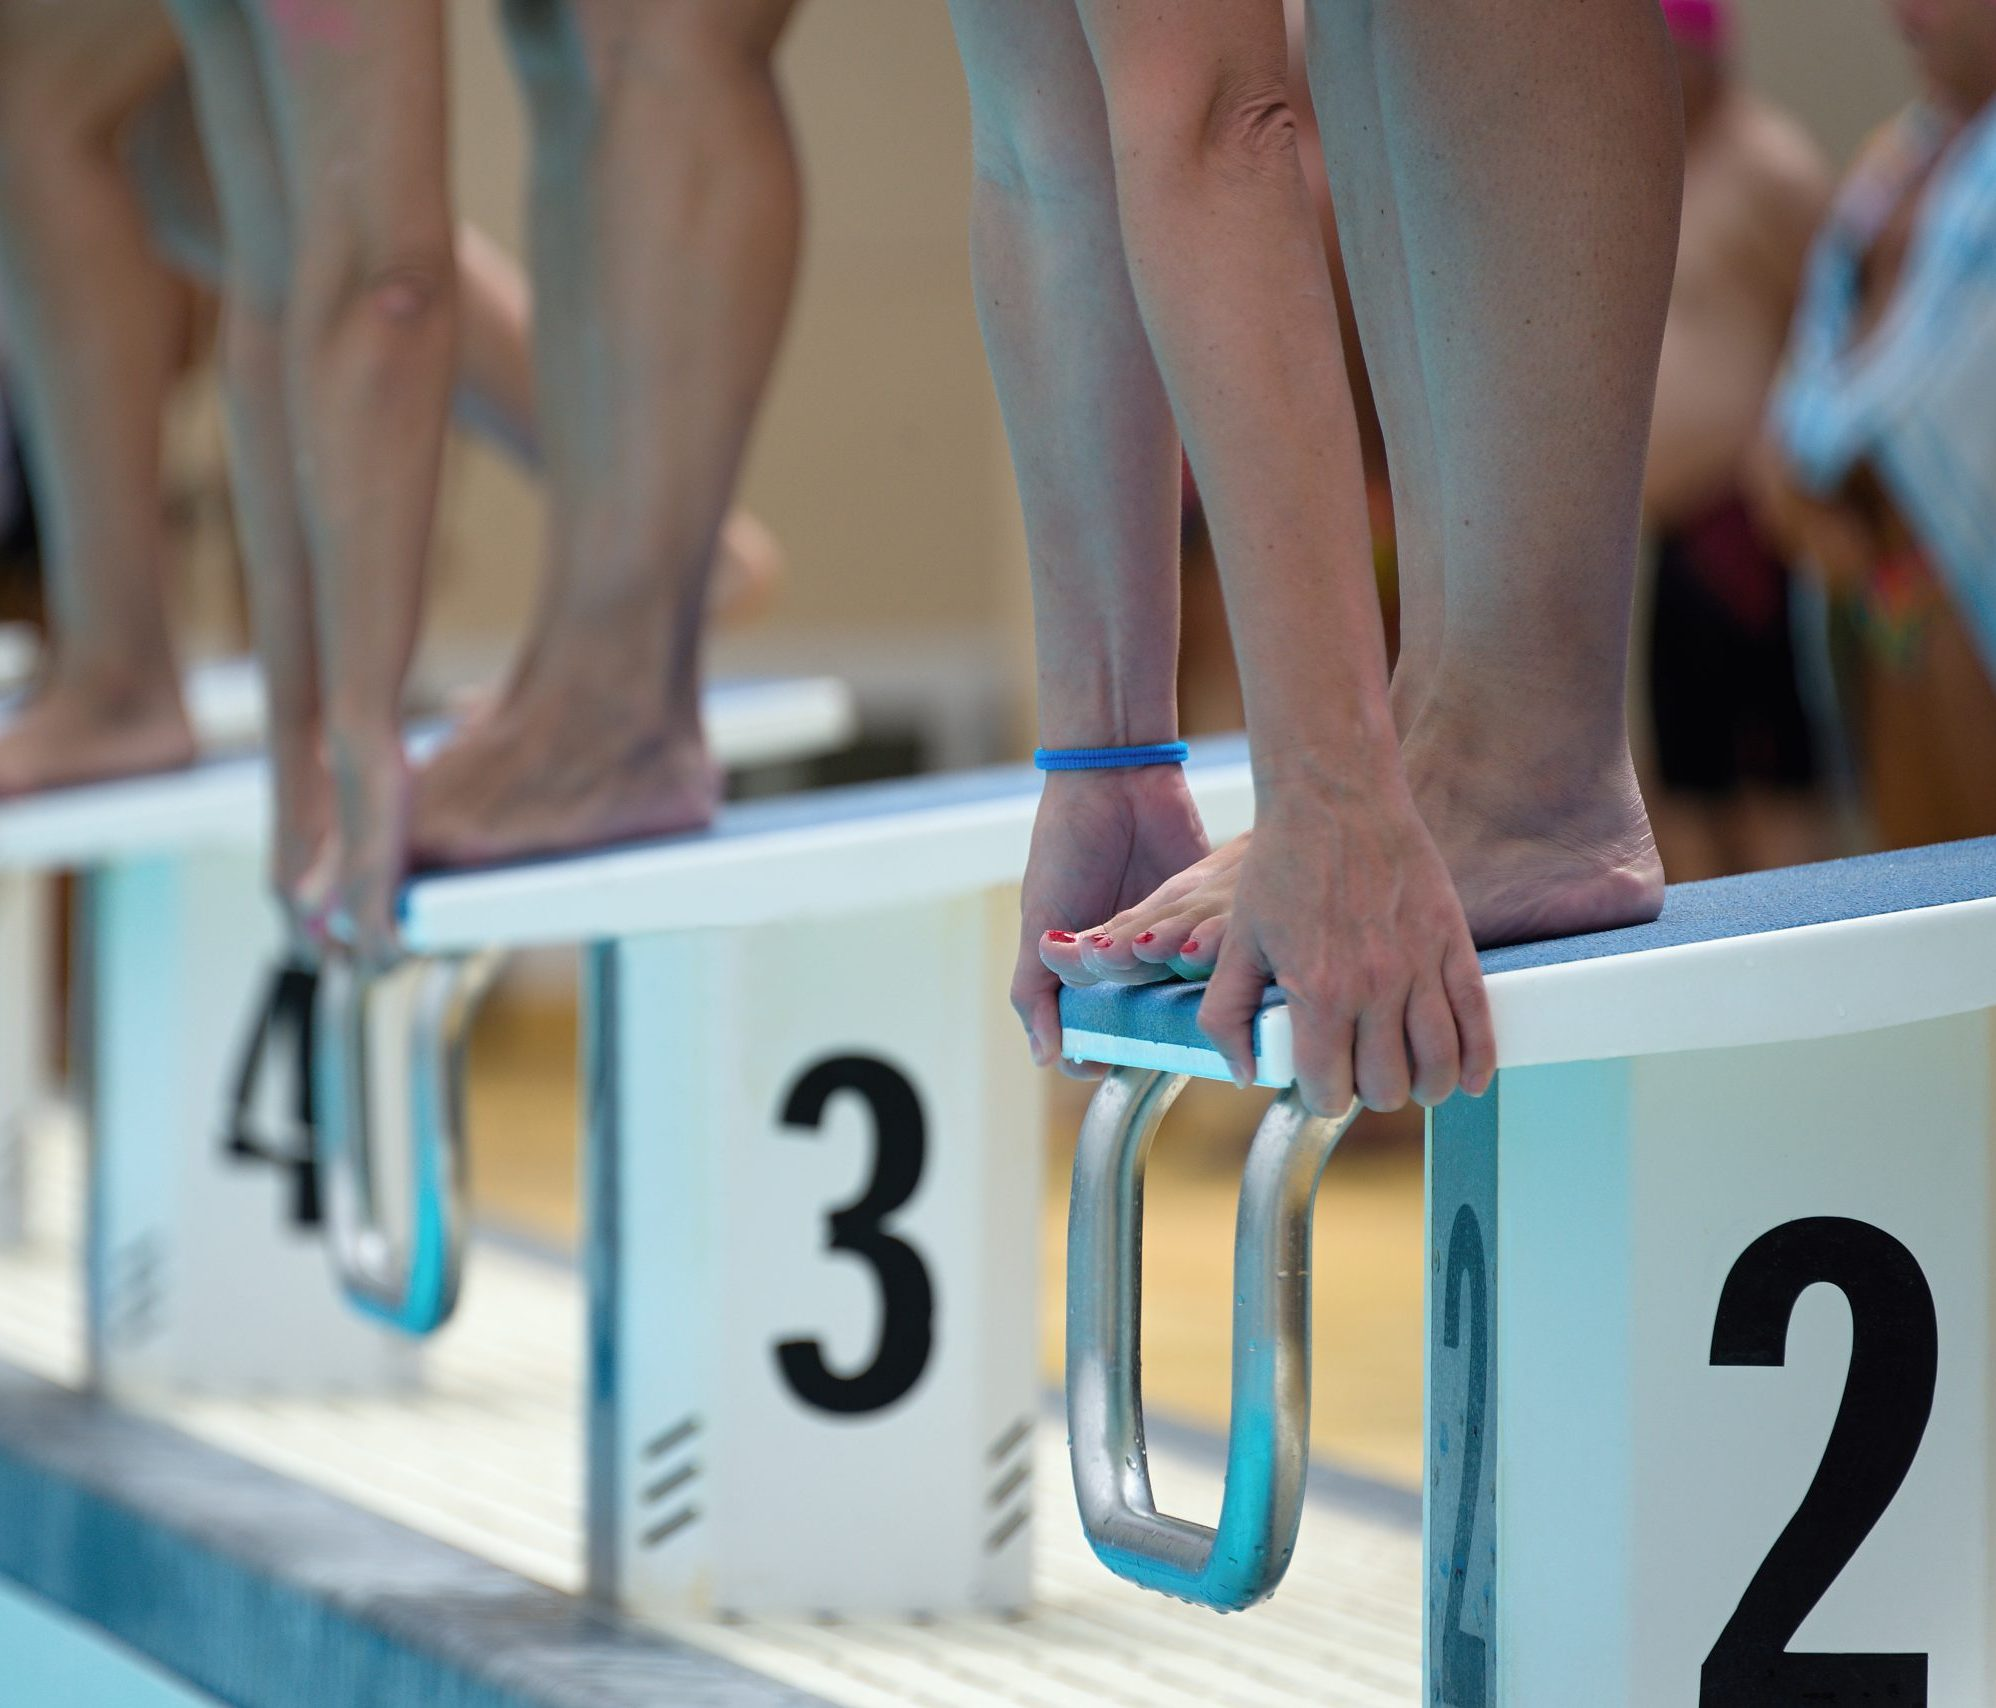 Swimmers on the starting blocks at the beginning of a race